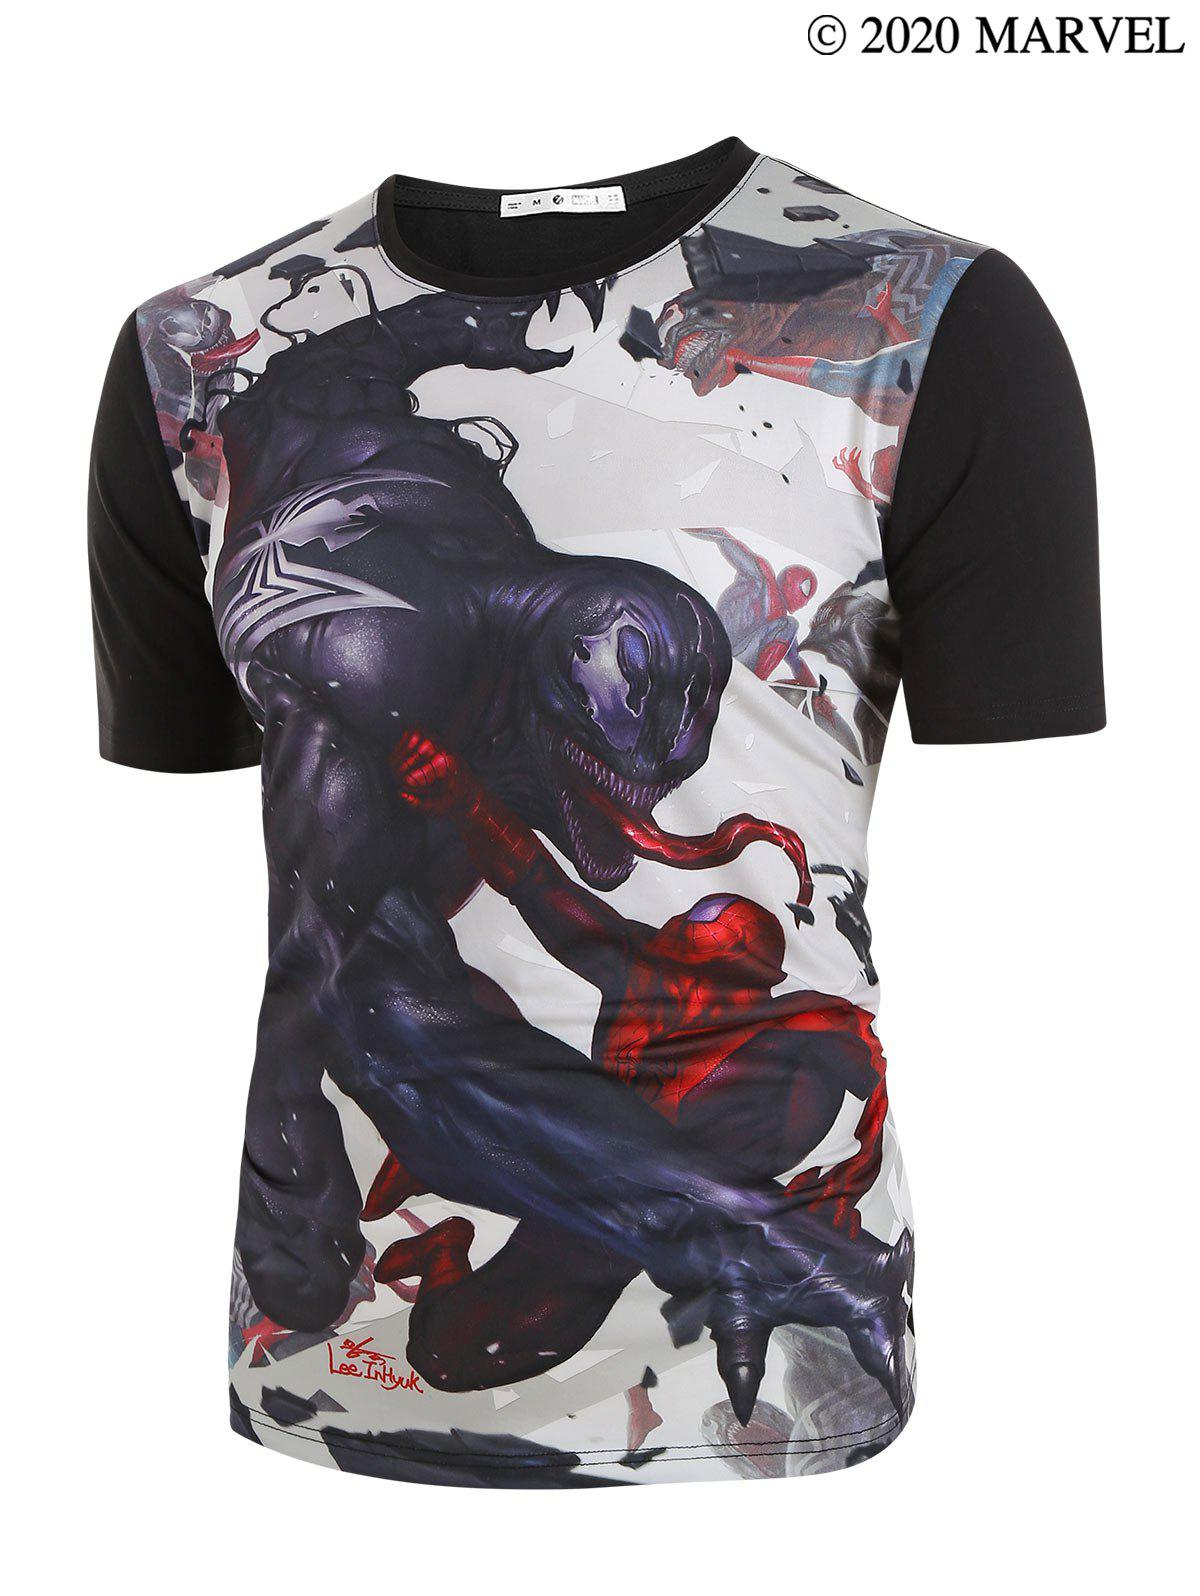 Store Marvel Spider-Man Venom Cartoon Character Printed Short Sleeves T-shirt